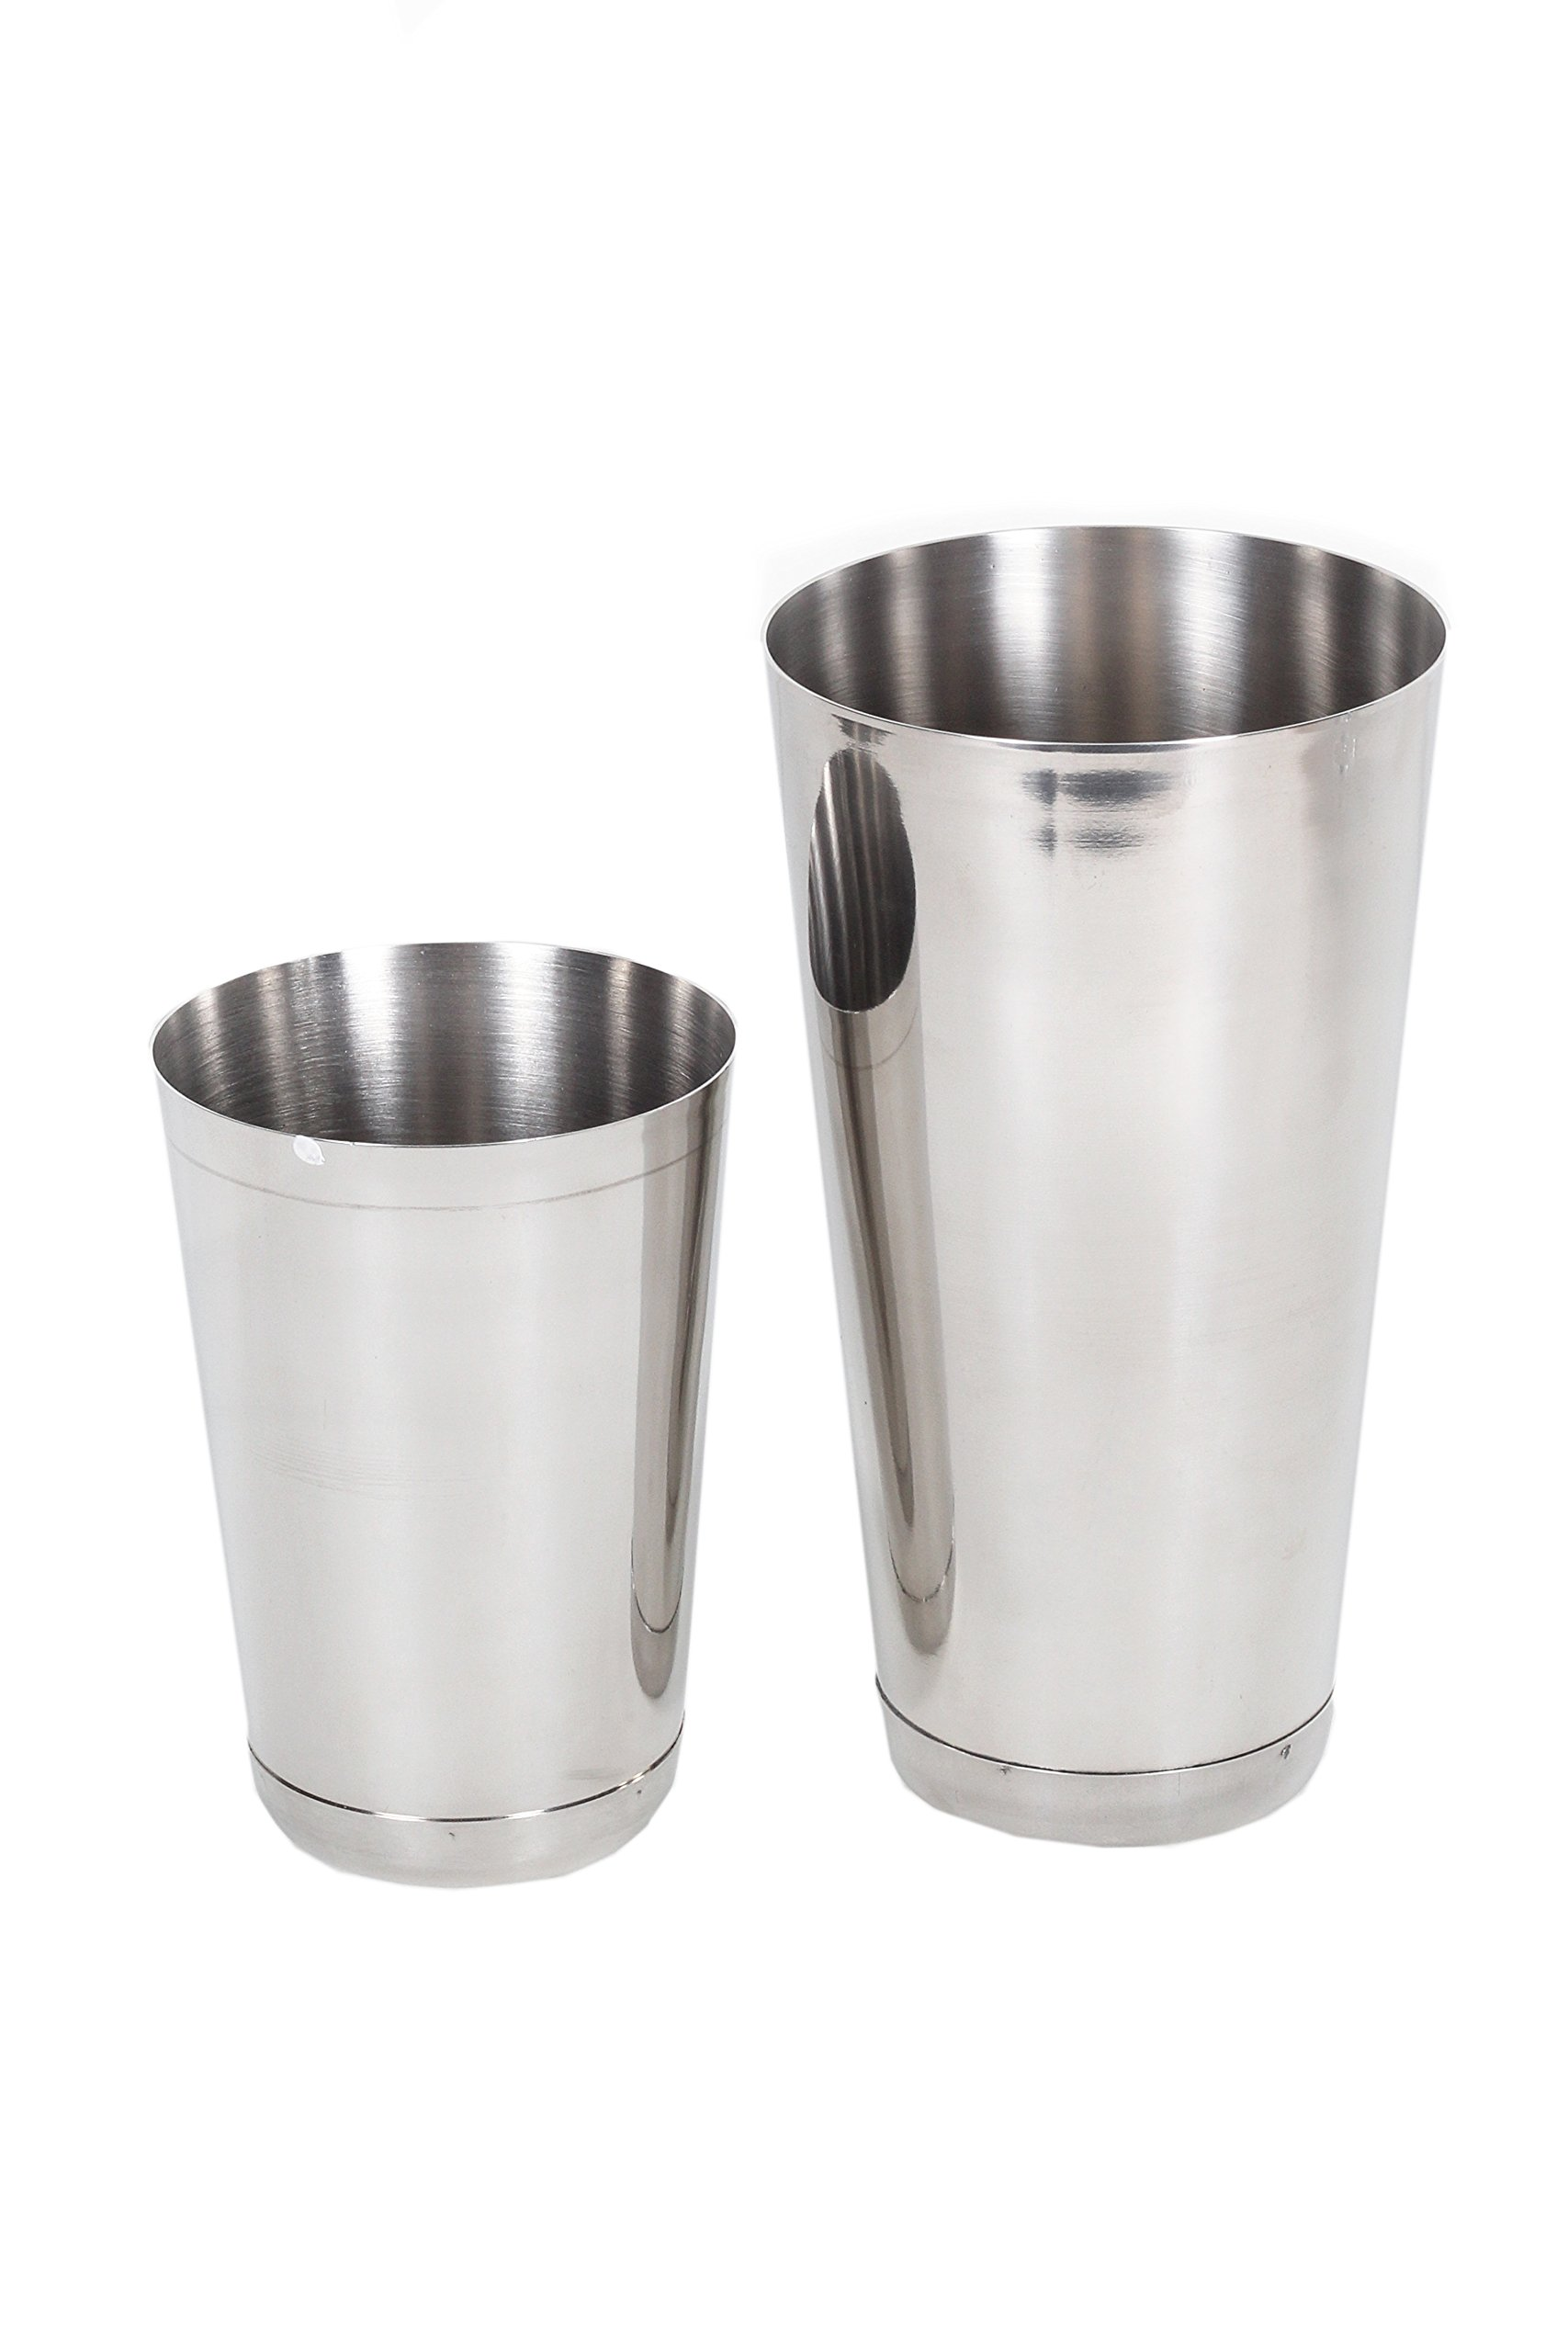 2 Piece Cocktail Shaker Set, 15 Ounce and 30 Ounce, Stainless Steel